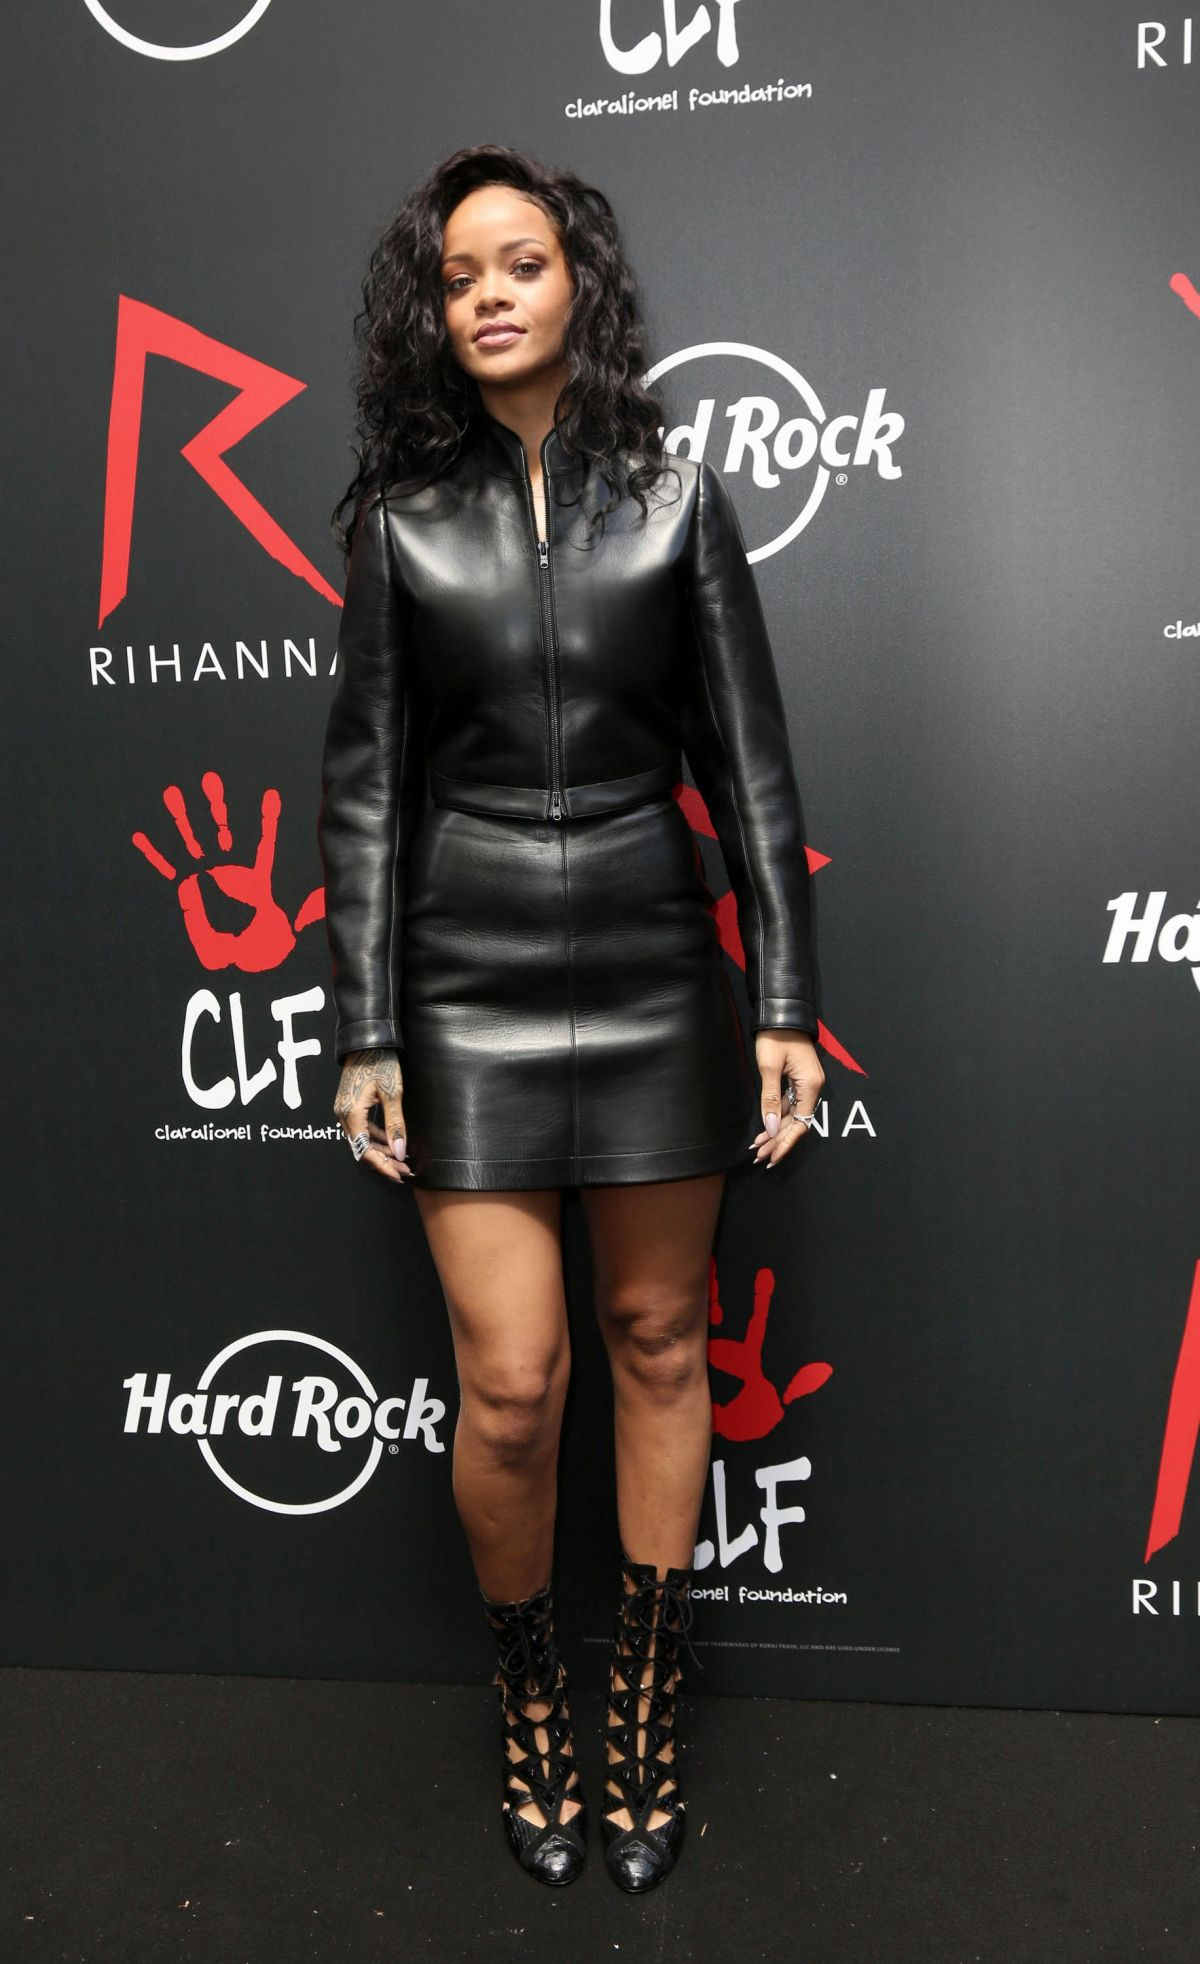 Rihanna At Charity T Shirt Release Event With Hard Rock